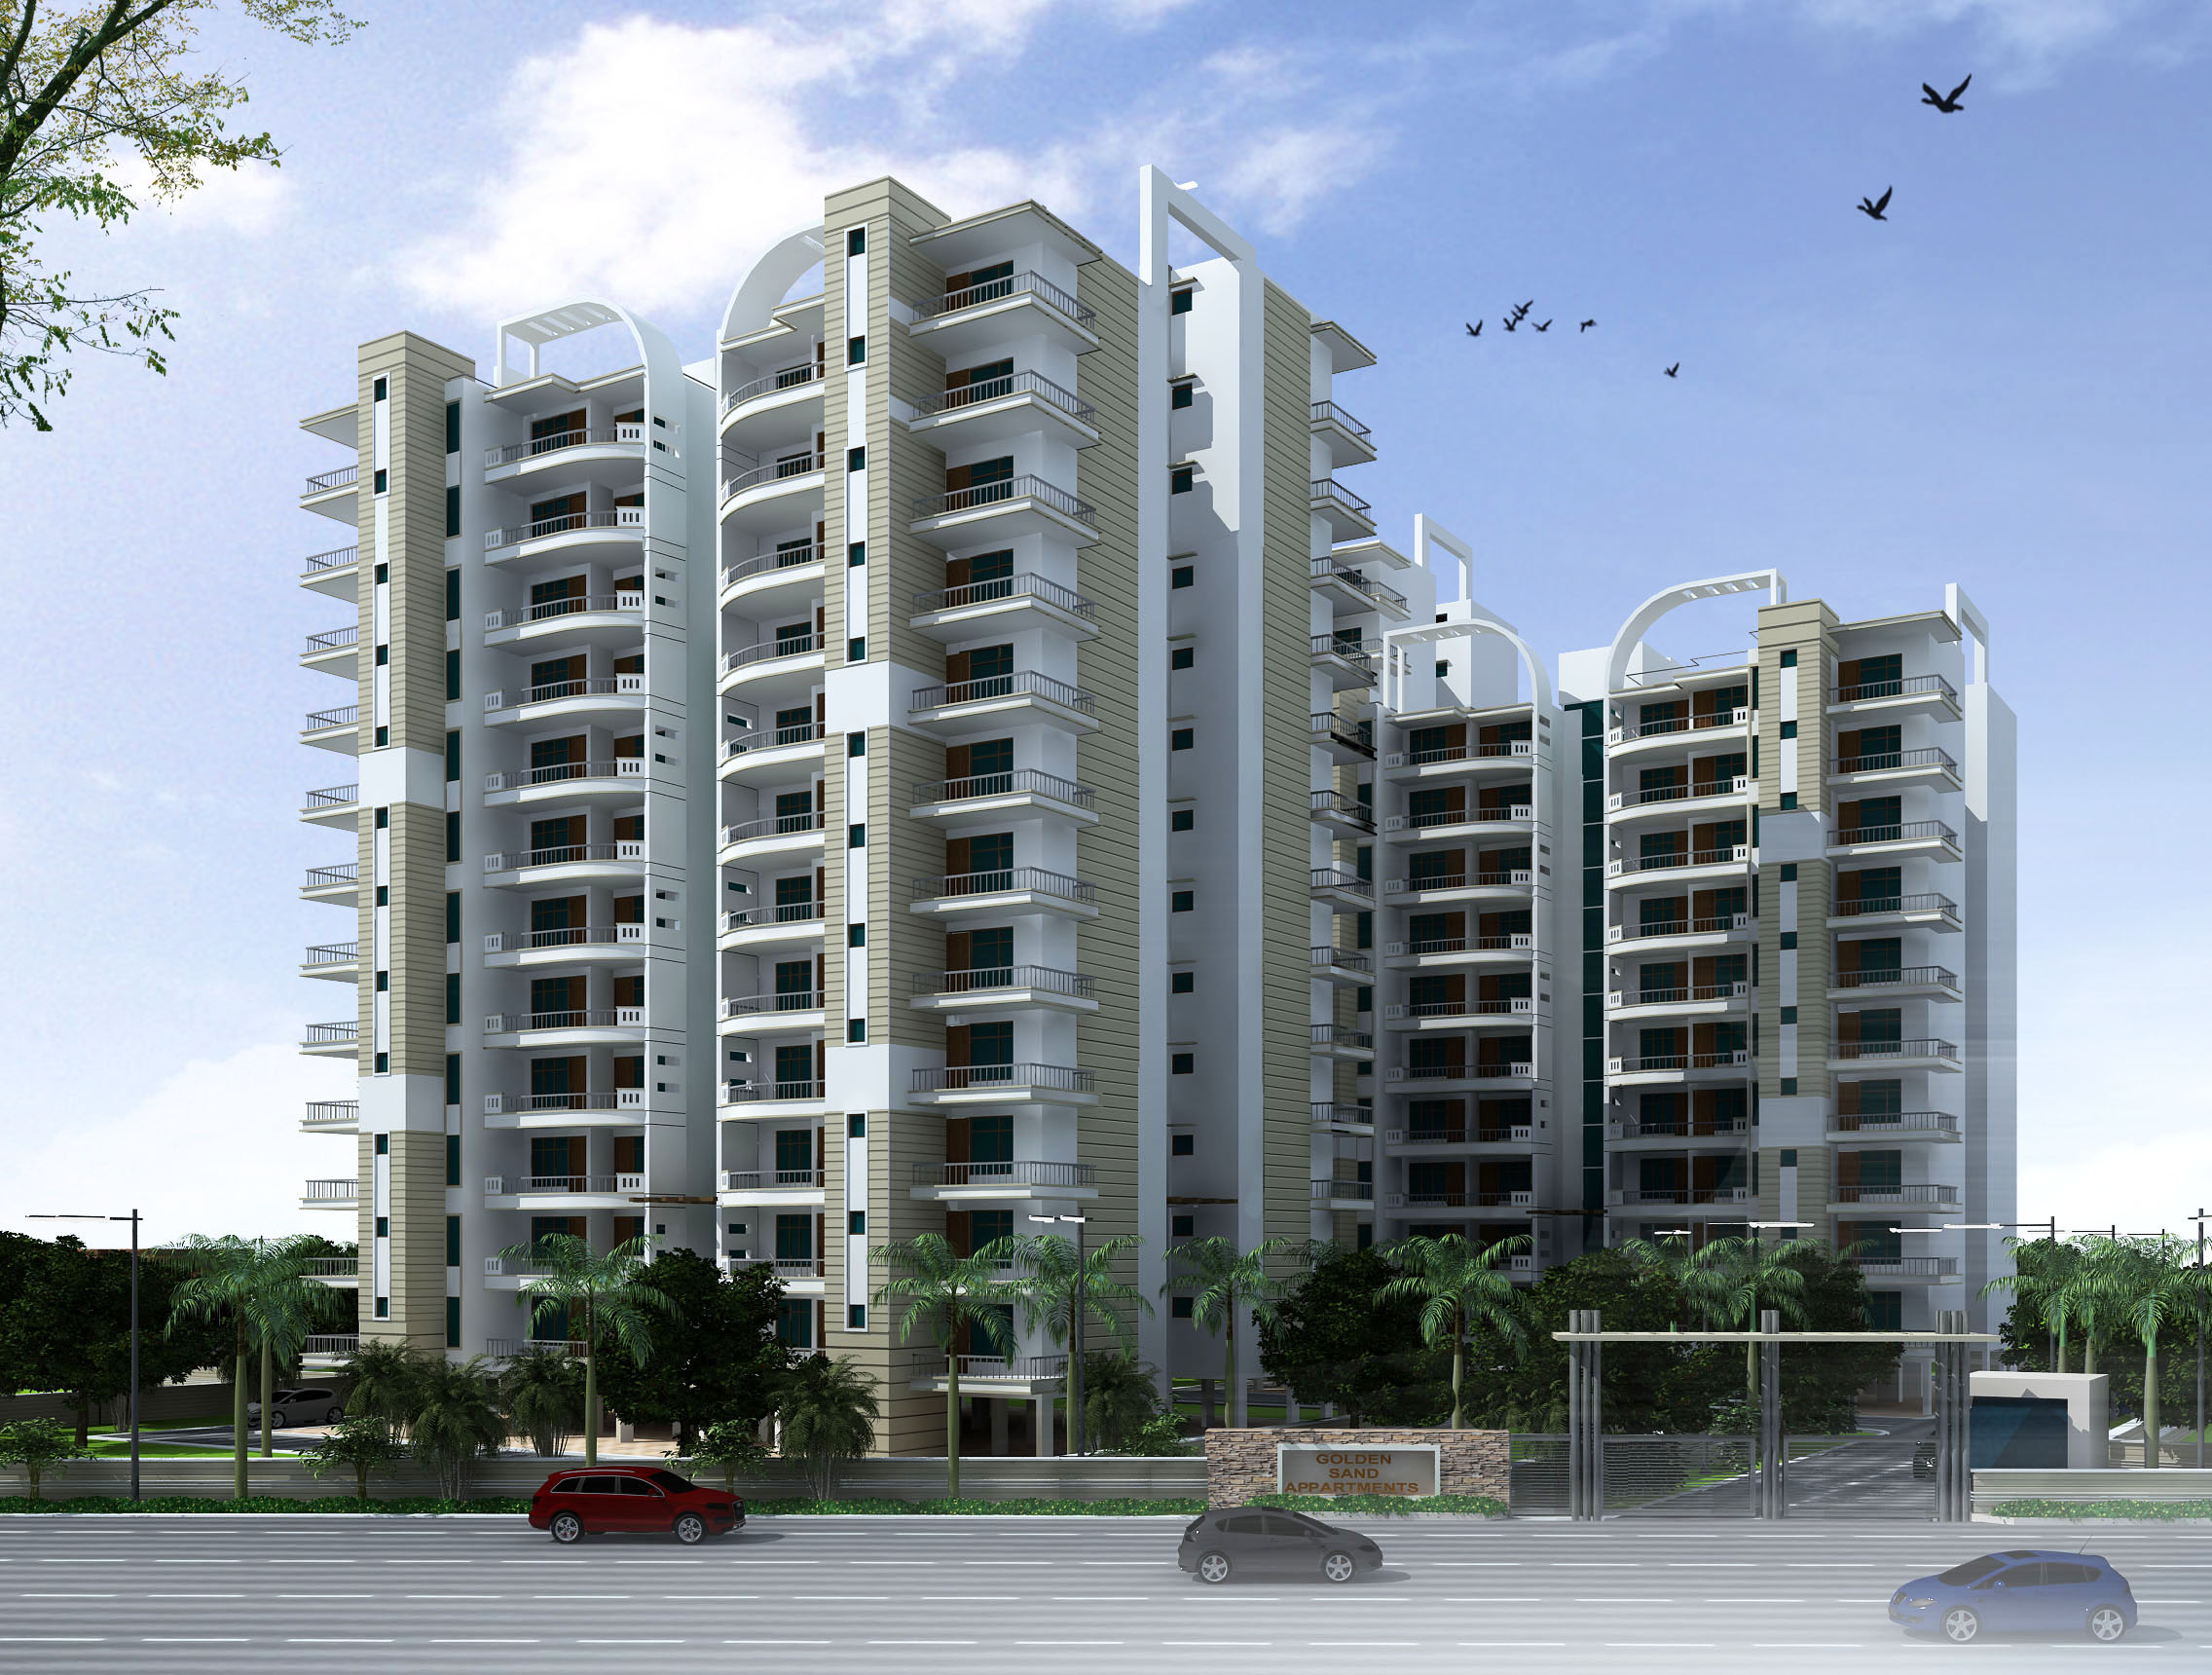 Flat Promoters In Chennai Mobile No 9840043223 By Archit Homes Private Ltd Flat Promoters In